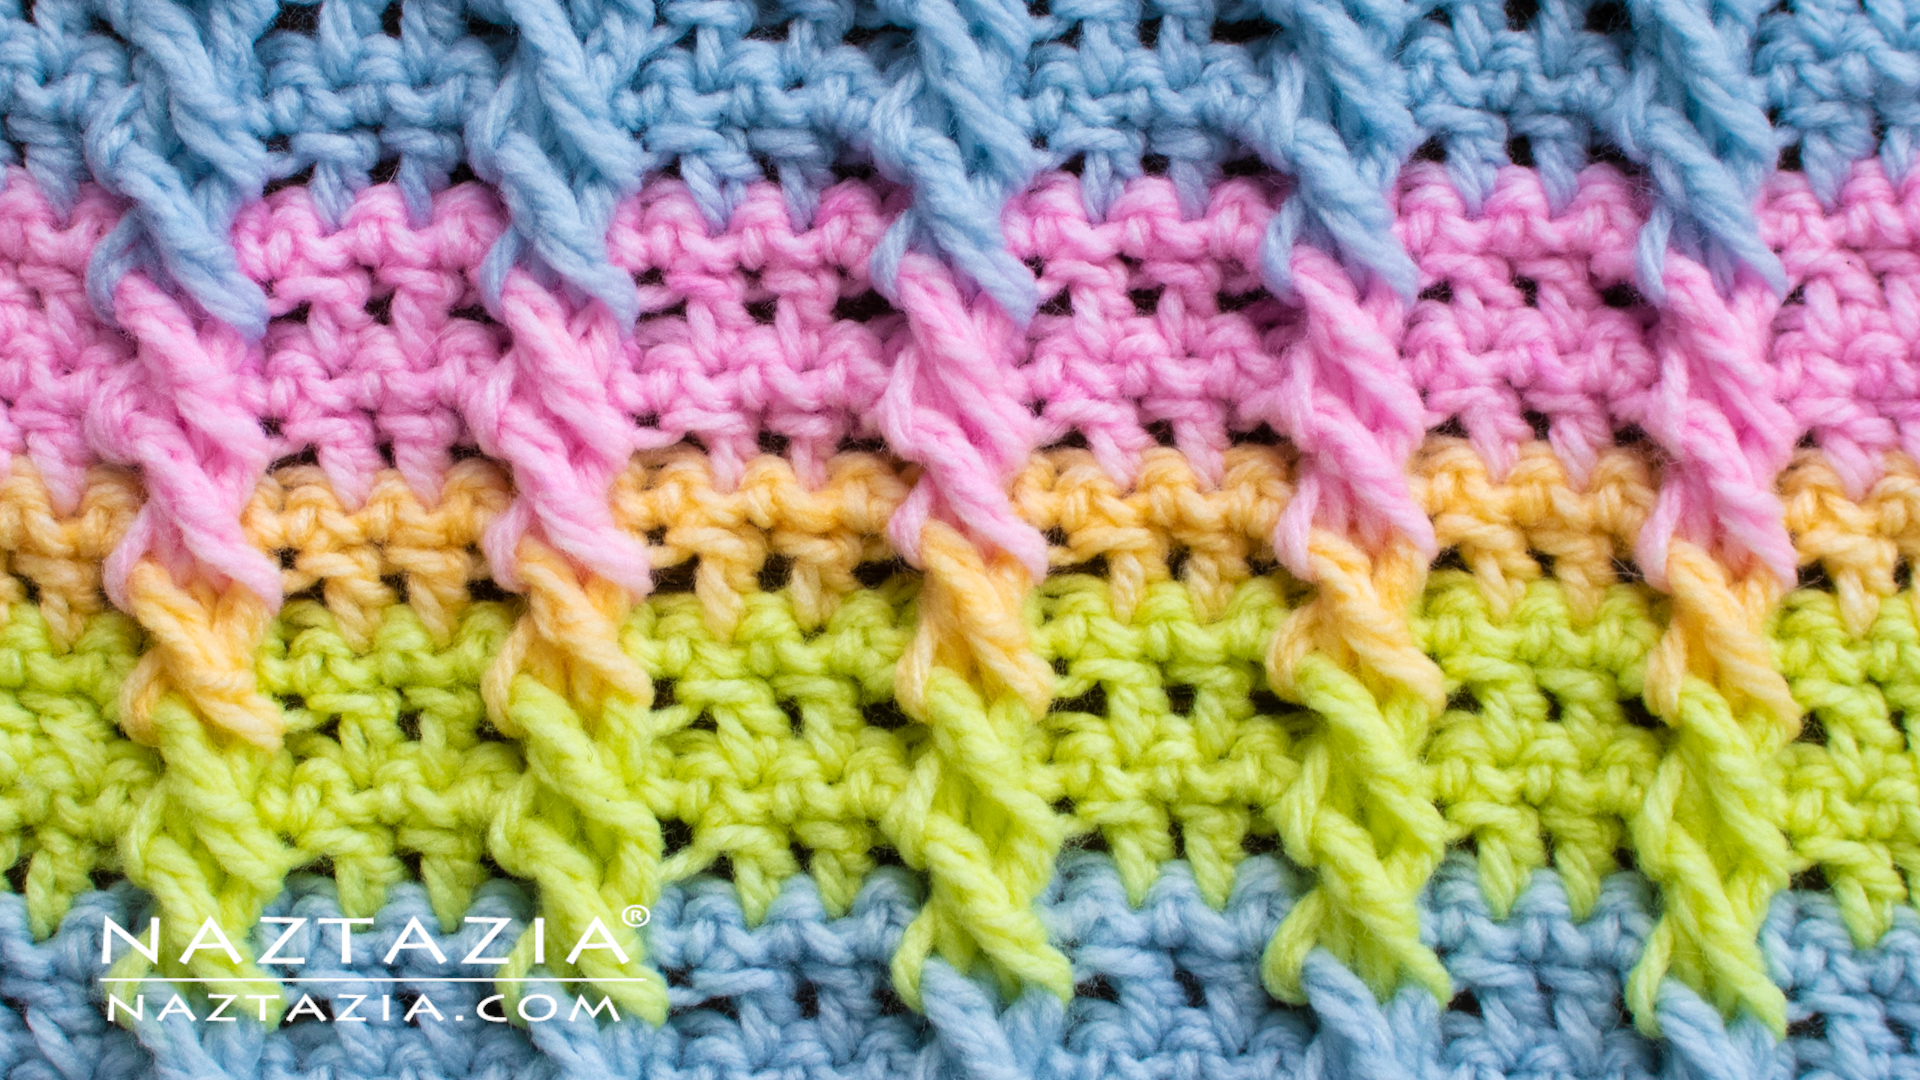 How To Crochet Cable Stitch And Crochet Braids Naztazia